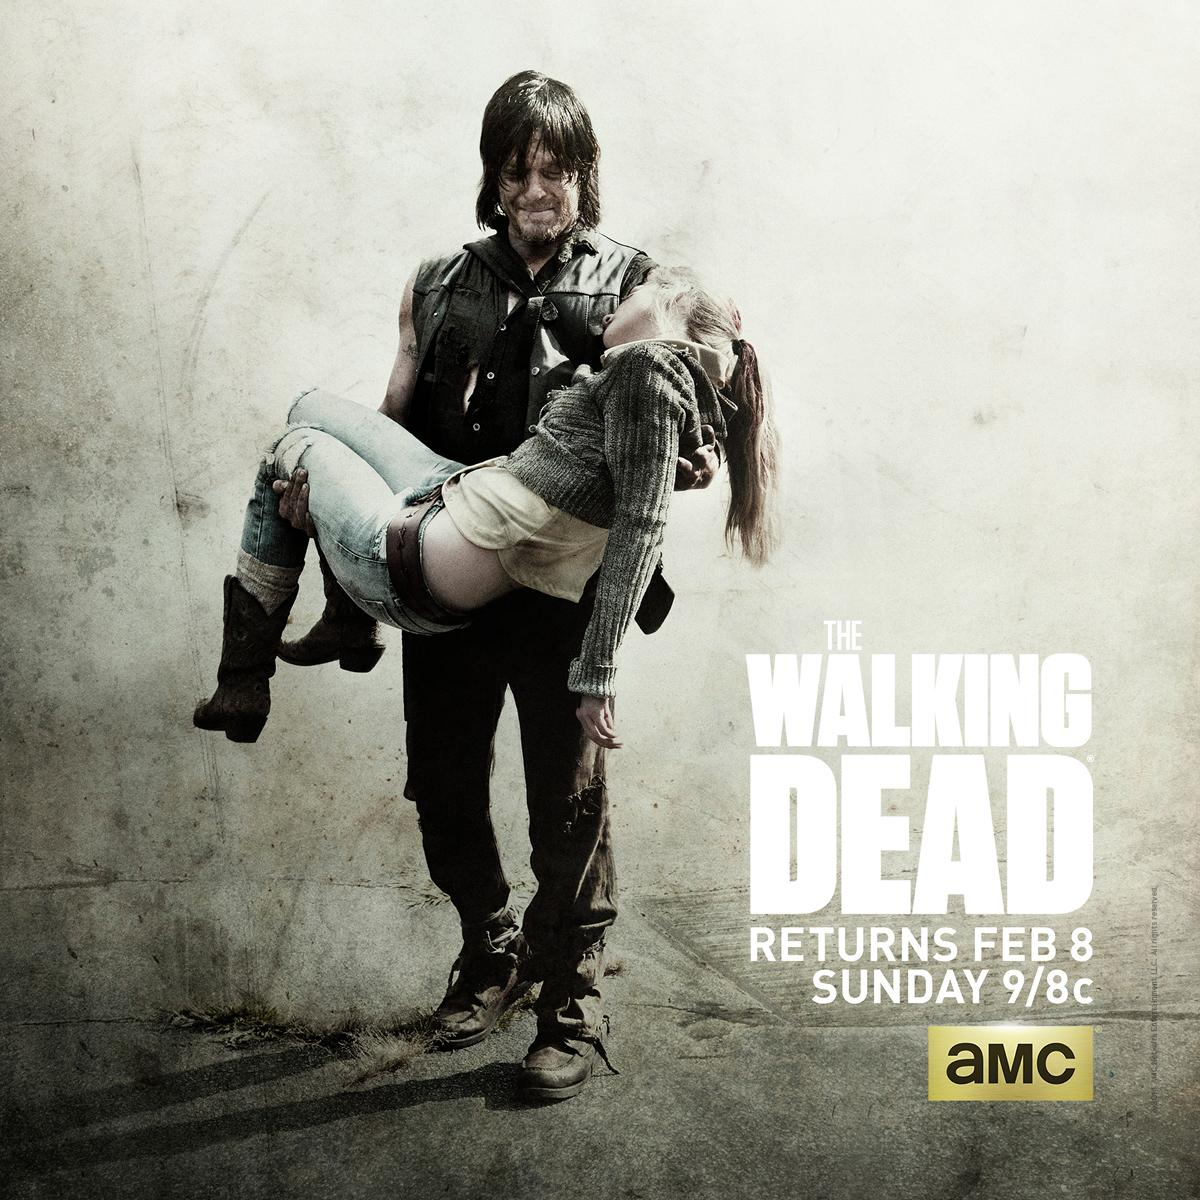 #RIPBeth #TheWalkingDead http://t.co/D2zPrCrf8V